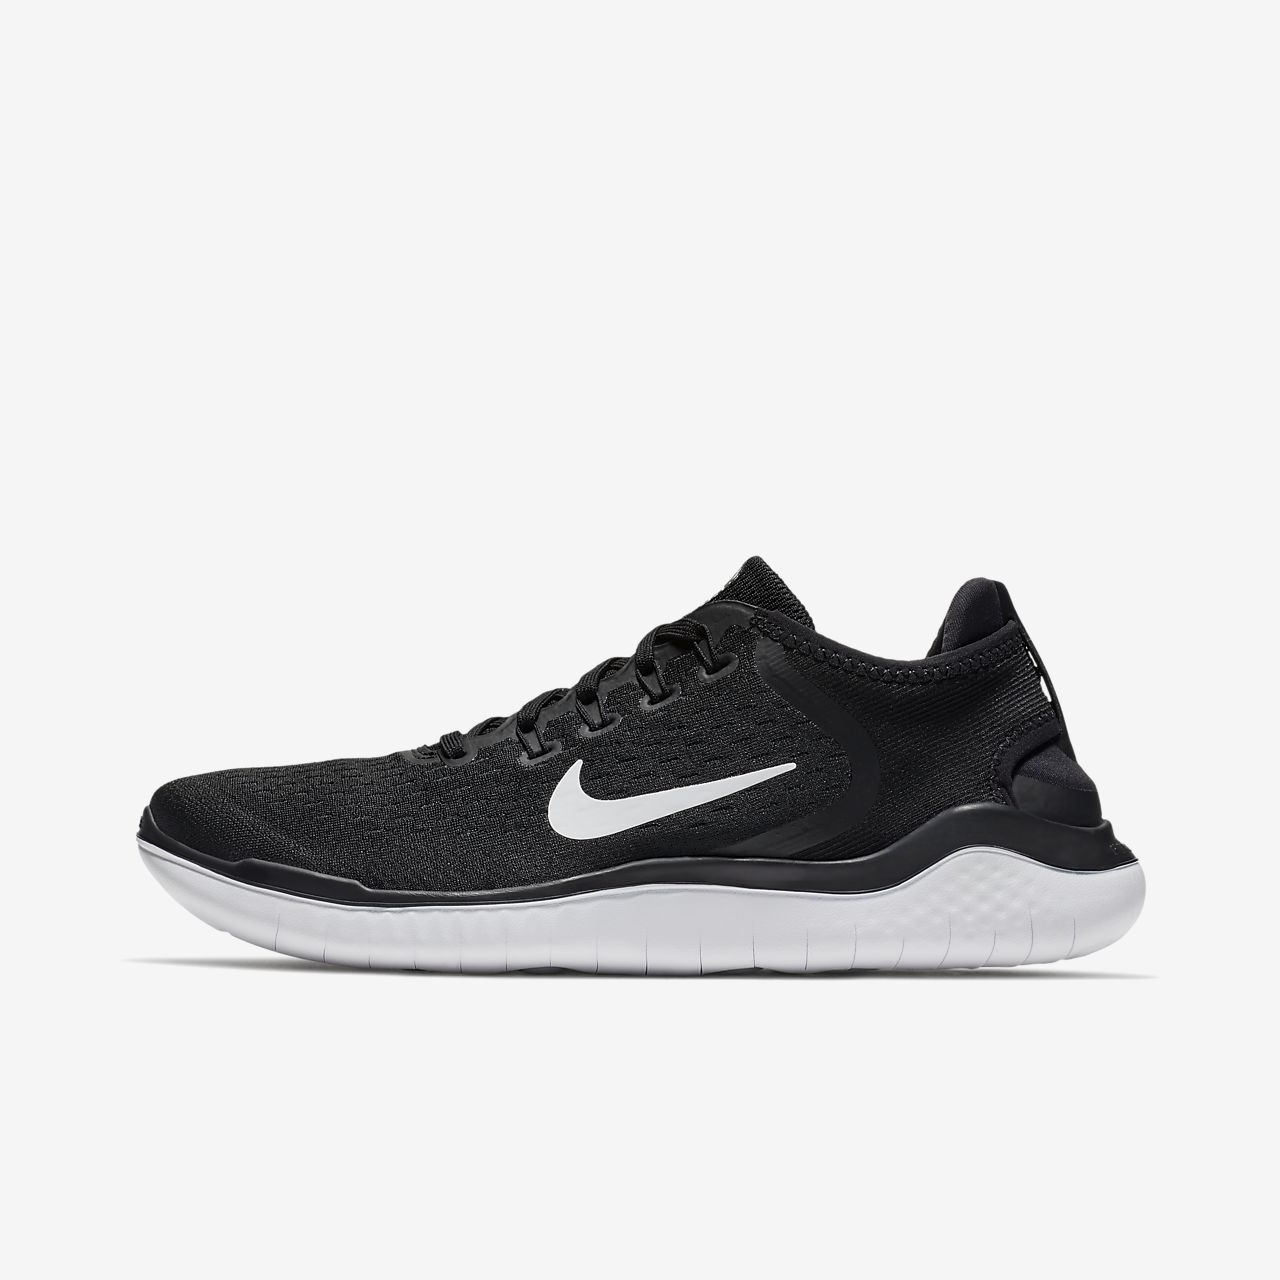 19f10a027853 Nike Free RN 2018 Men s Running Shoe. Nike.com IN